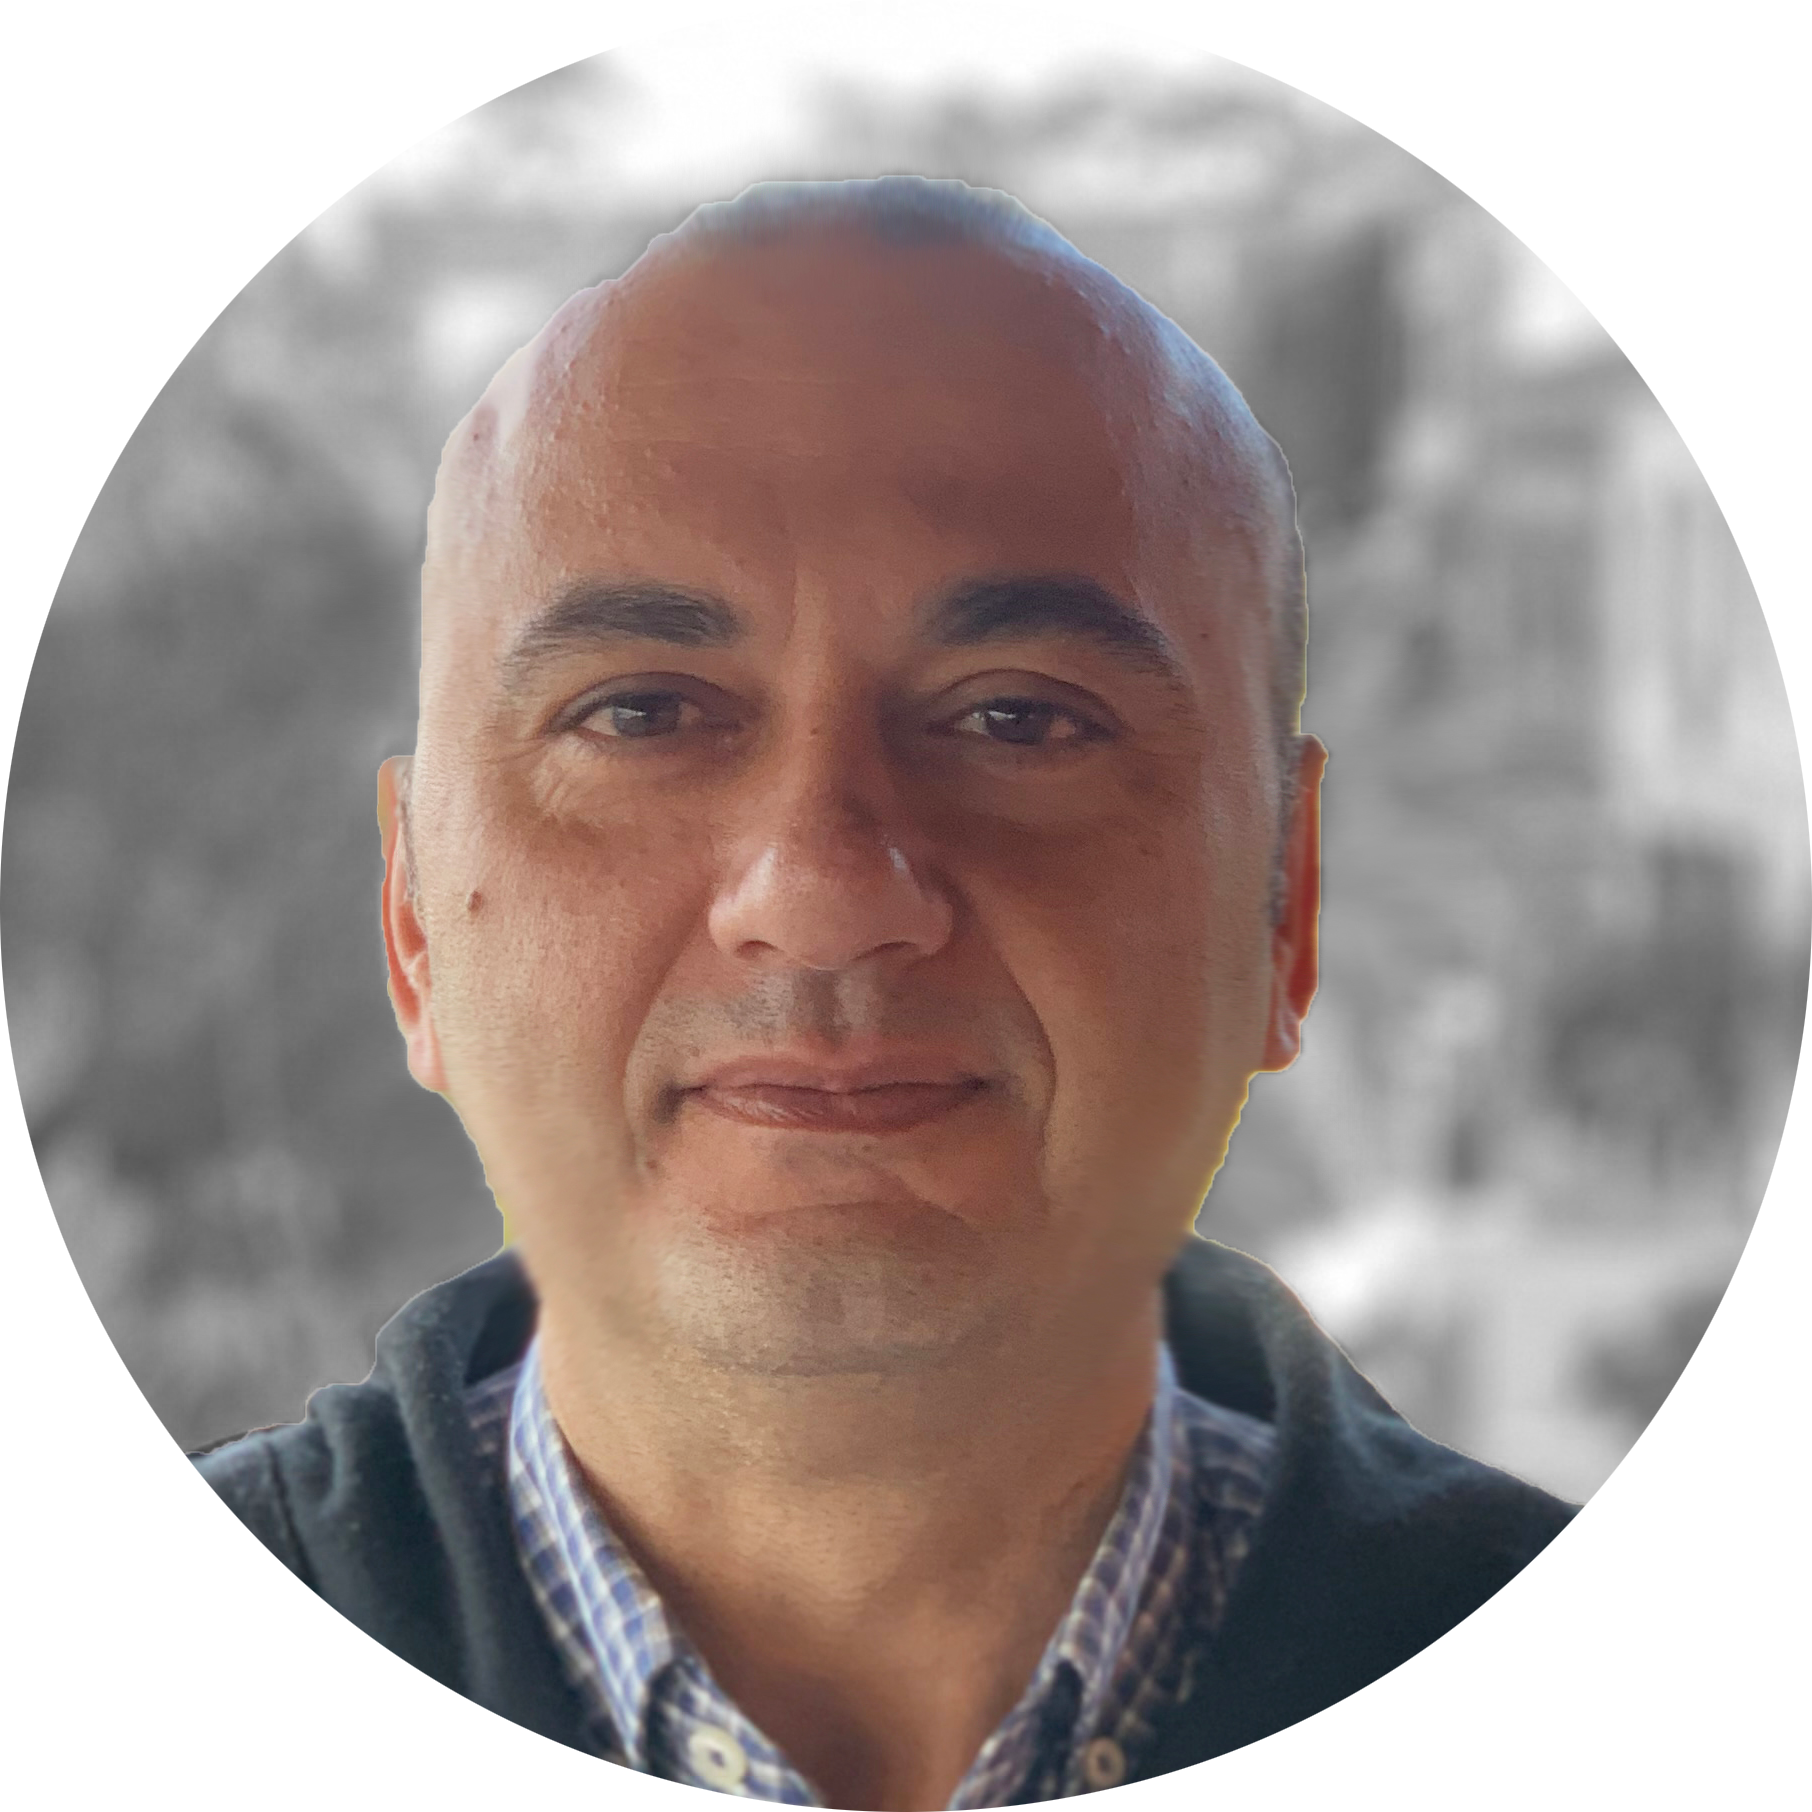 Nikos Gerarchakis, Engineer Corps @ National Defence Fund - Department